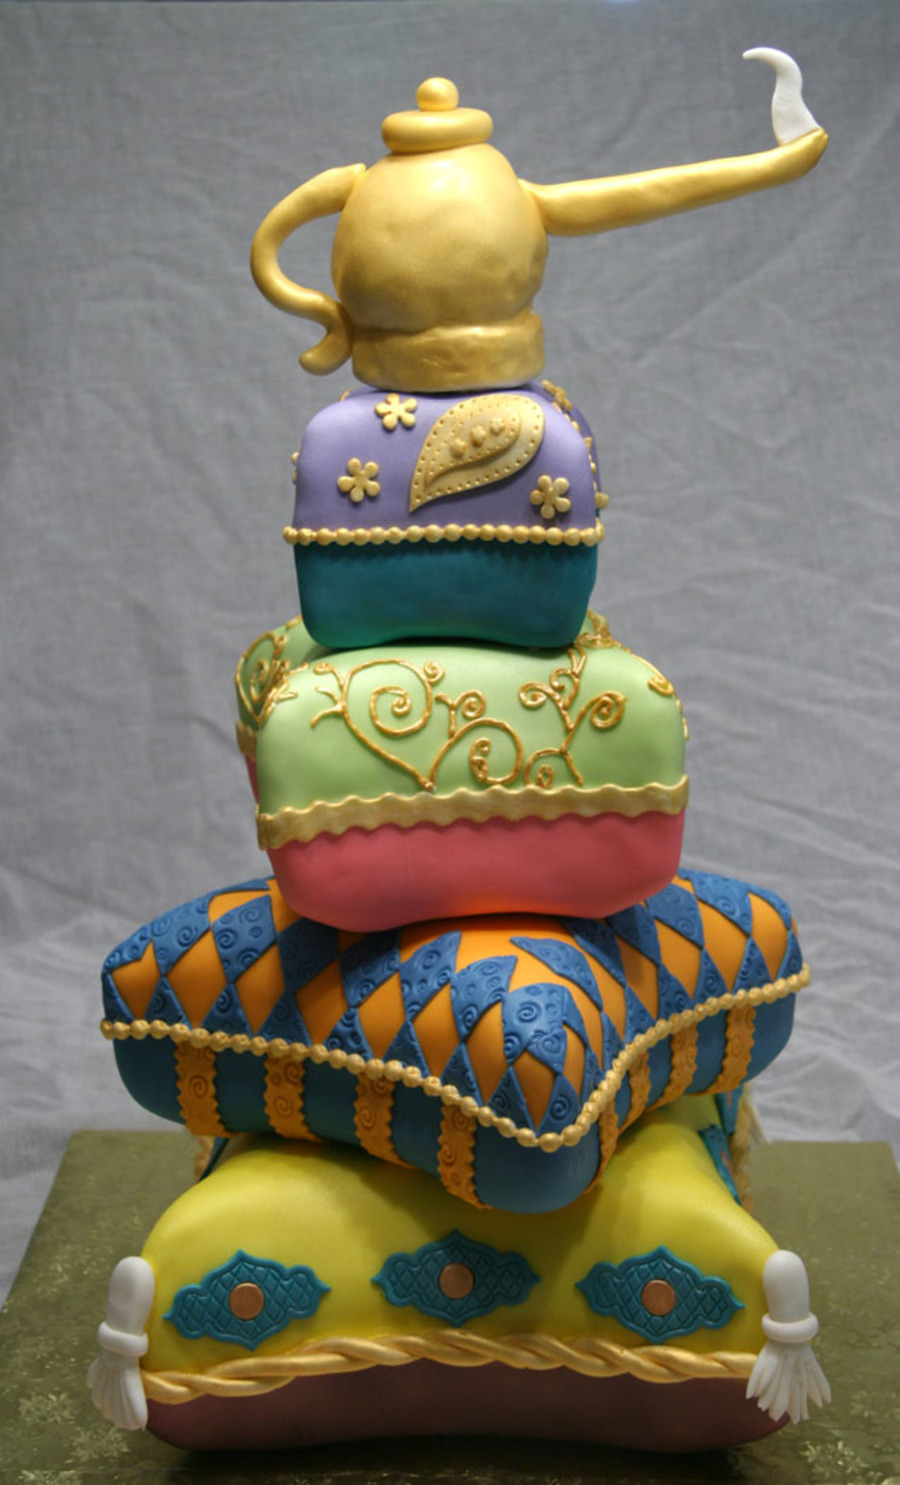 12 10 8 Amp 6 In Squares Carved Into Pillows Covered In Fondant With All Fondant Accents Lamp Made Out Of Rkt on Cake Central